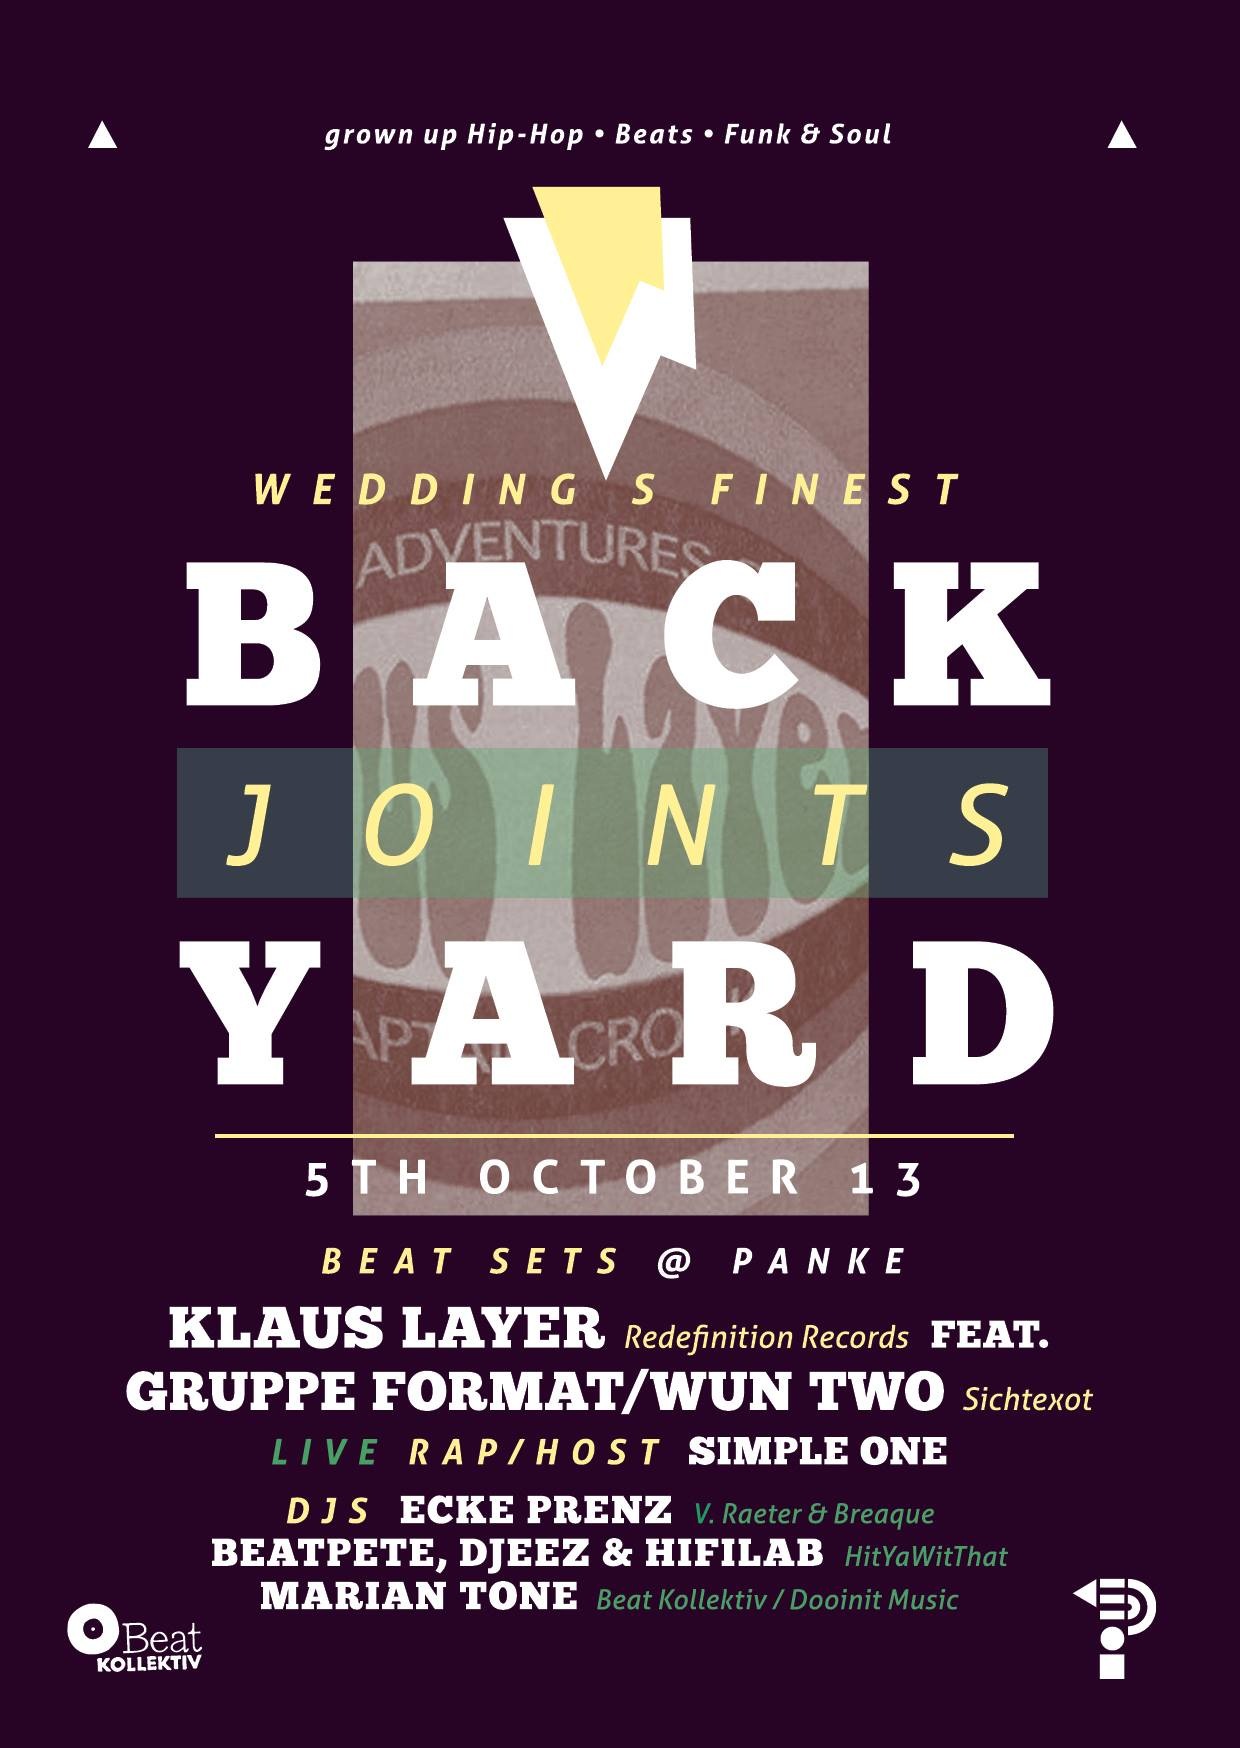 BACKYARD JOINTS – Klaus Layer Record Release Party